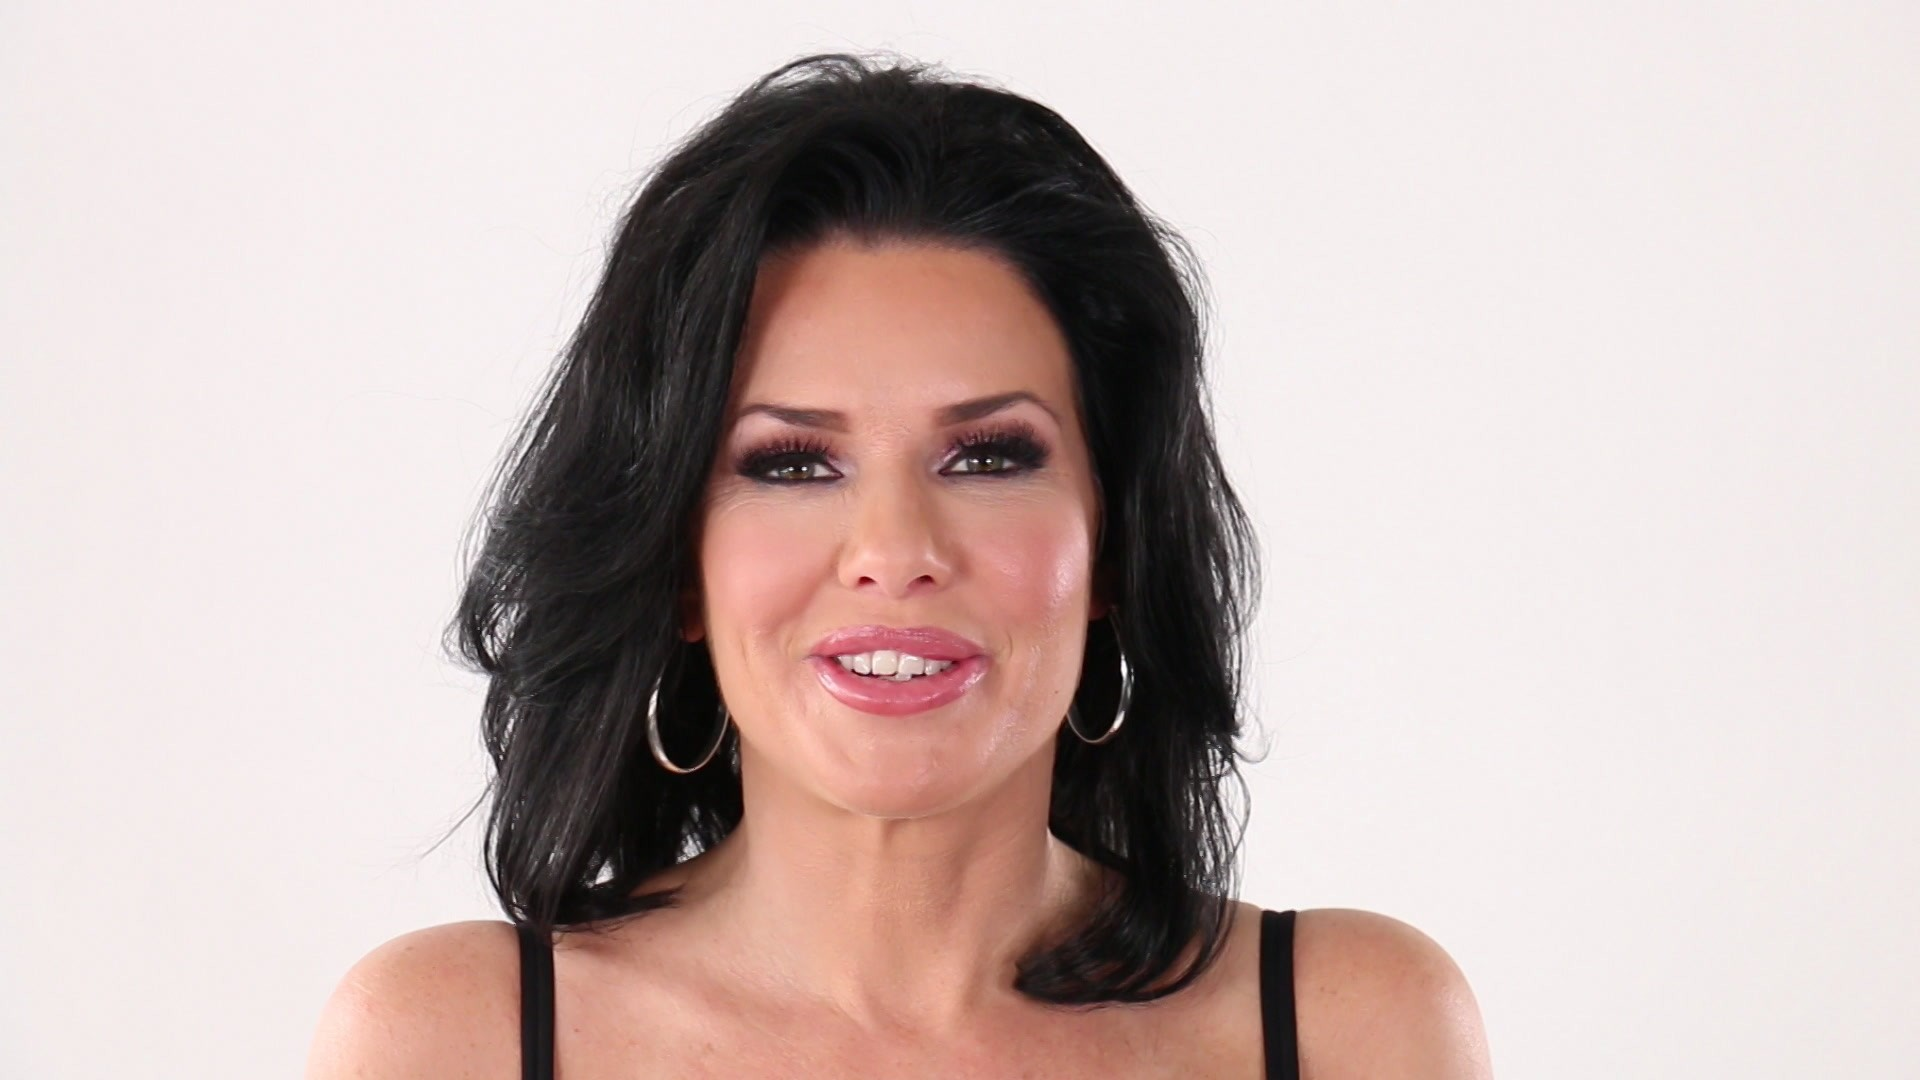 Scene with Veronica Avluv - image 3 out of 20